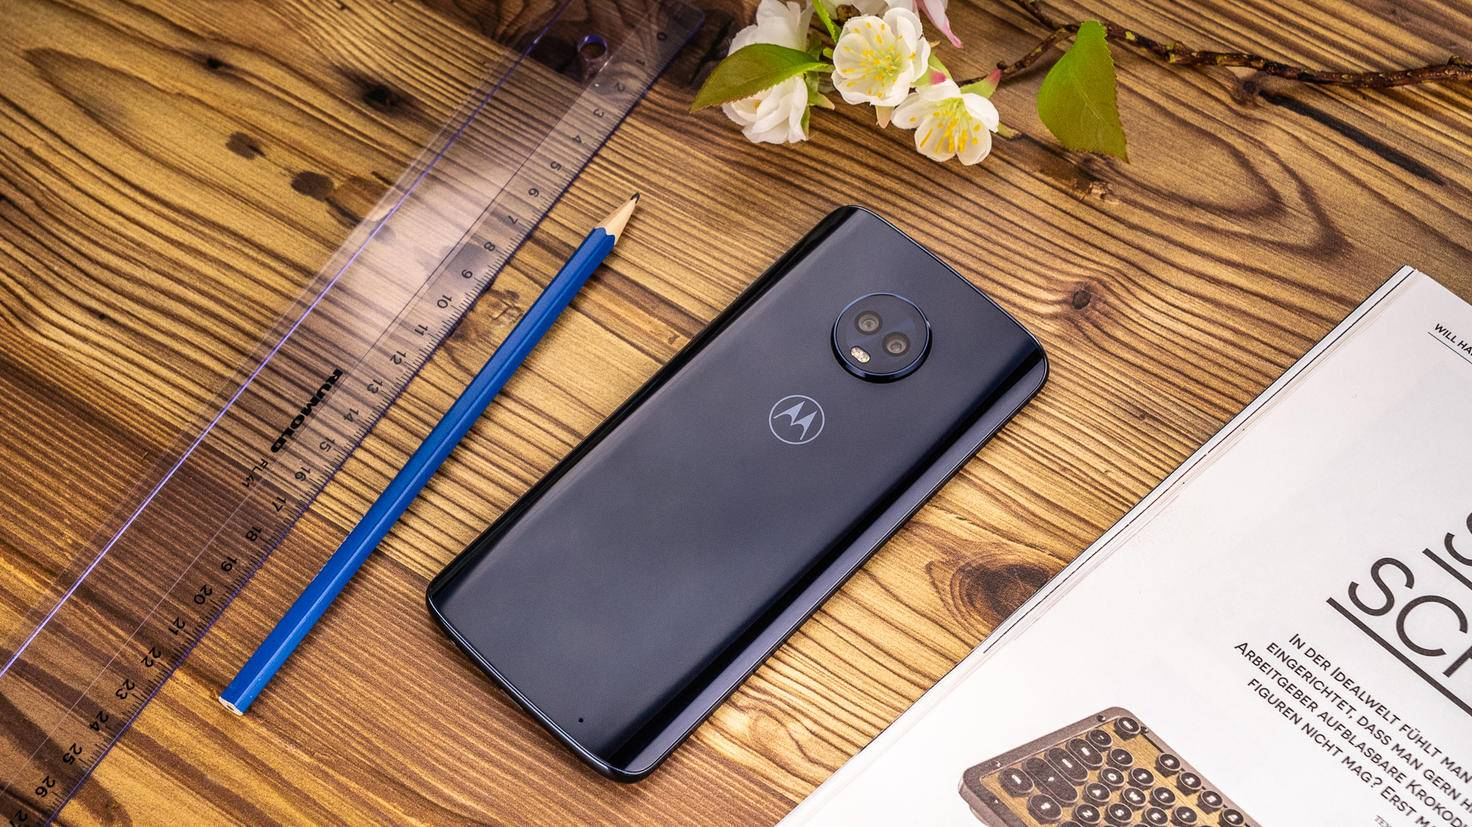 Motorola-Moto-G6-Plus-TURN-ON-2